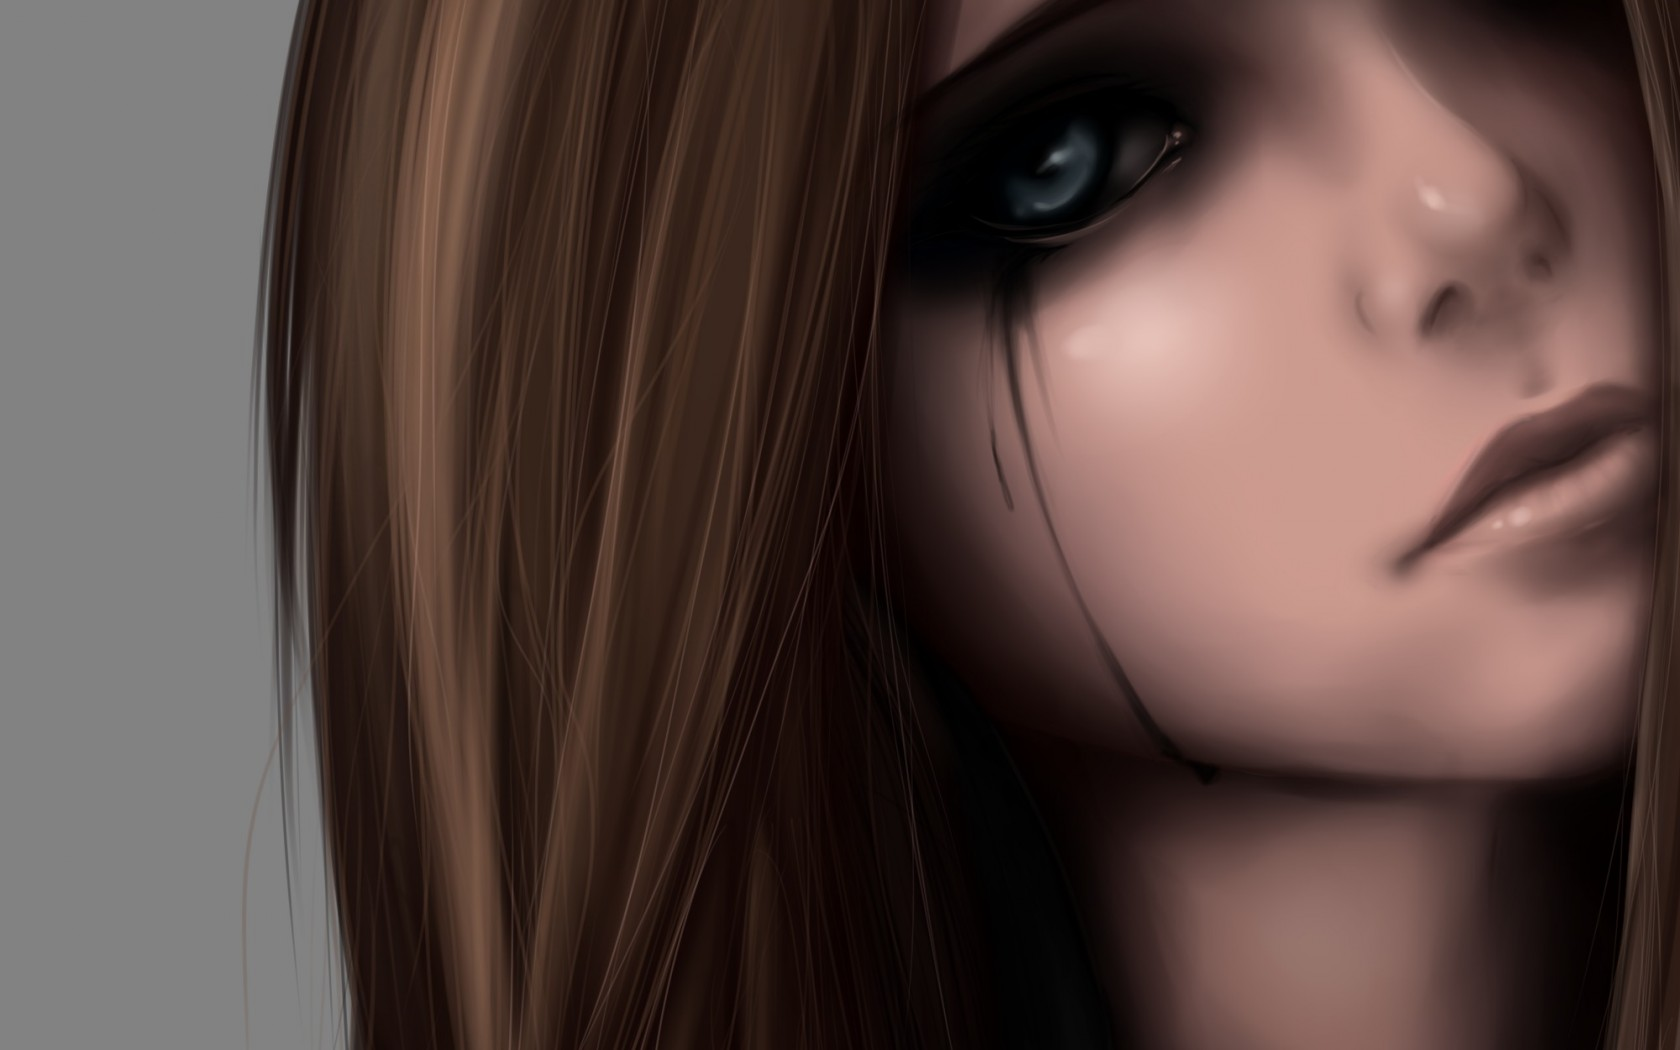 Girl crying art